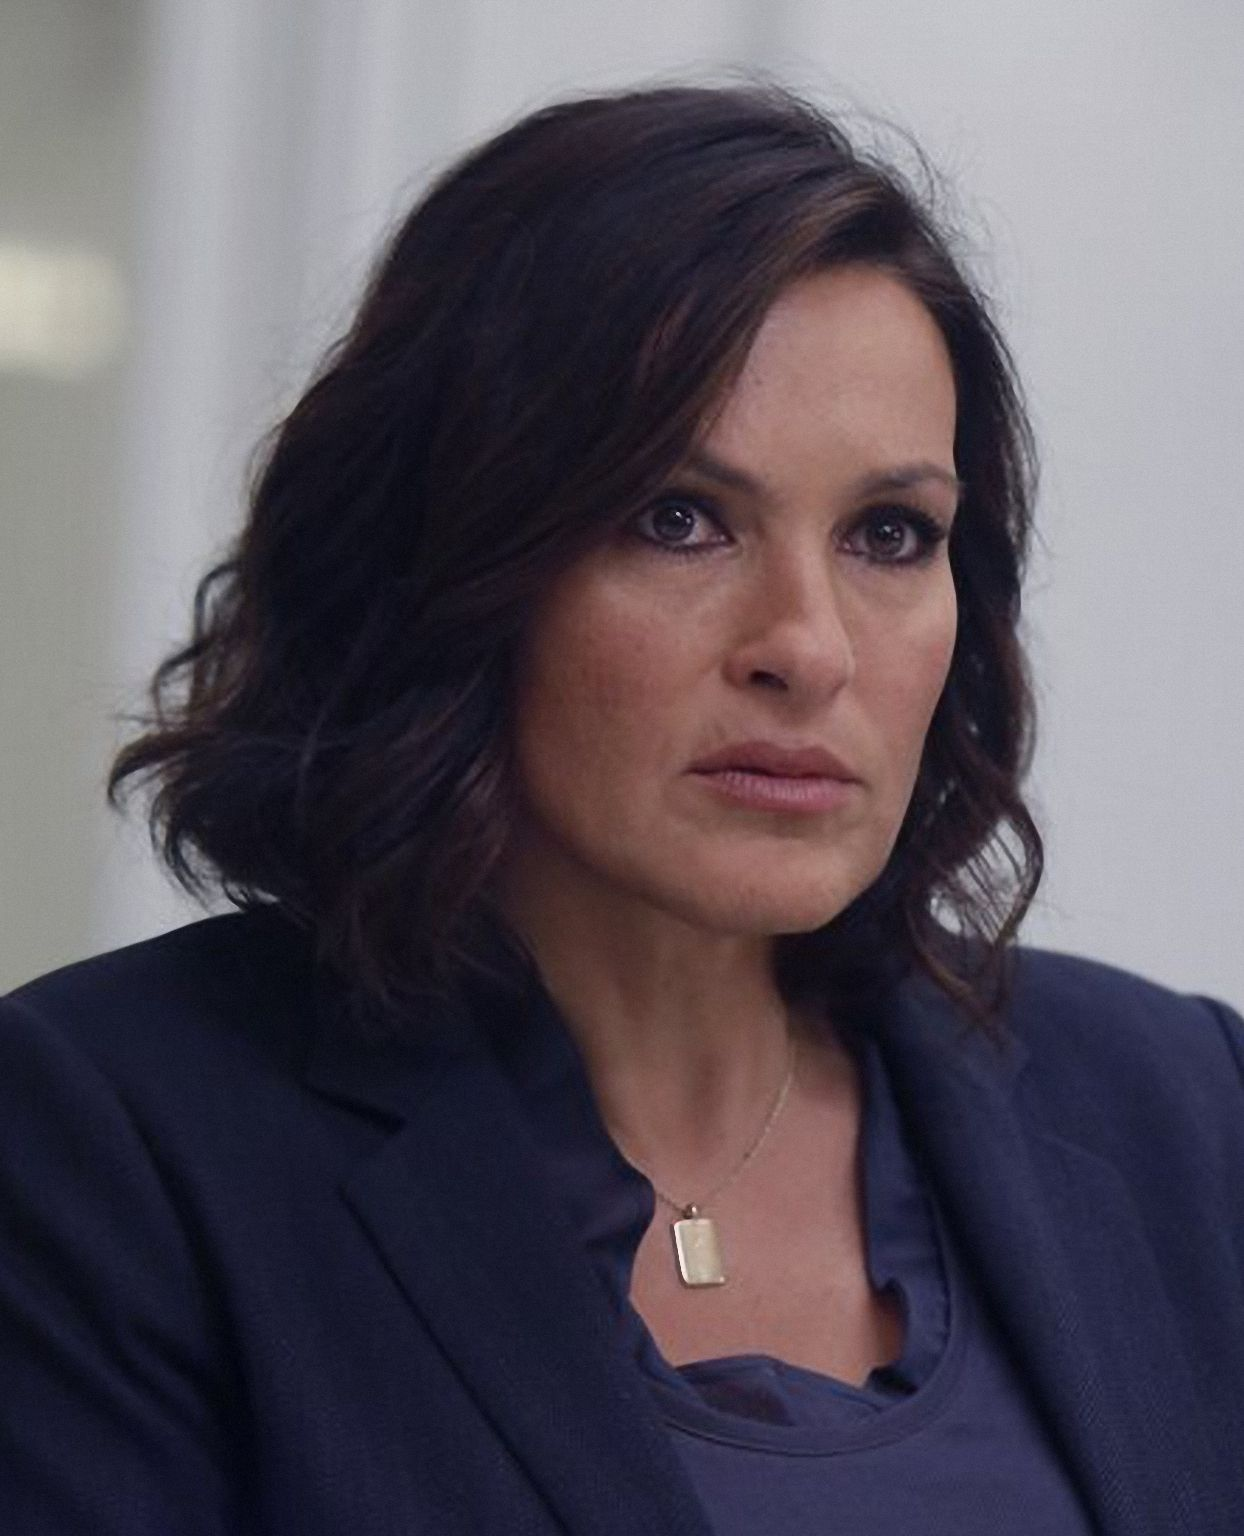 mariska hargitay, olivia benson, law and order svu, season 15